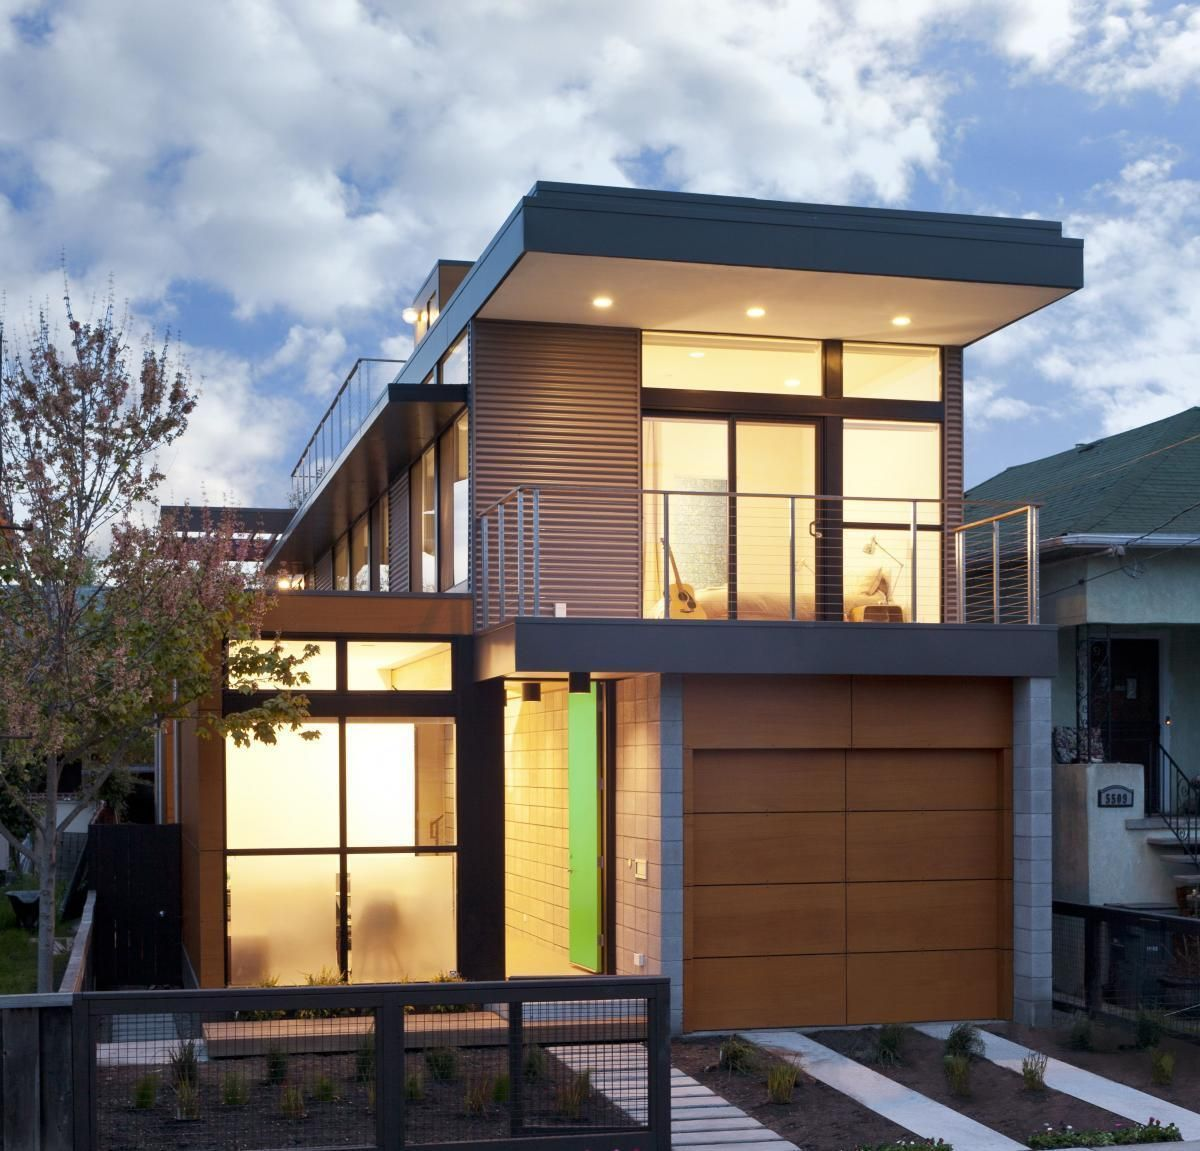 Small modern prefab house design with lighting idea in ceiling as well as wooden gate garage